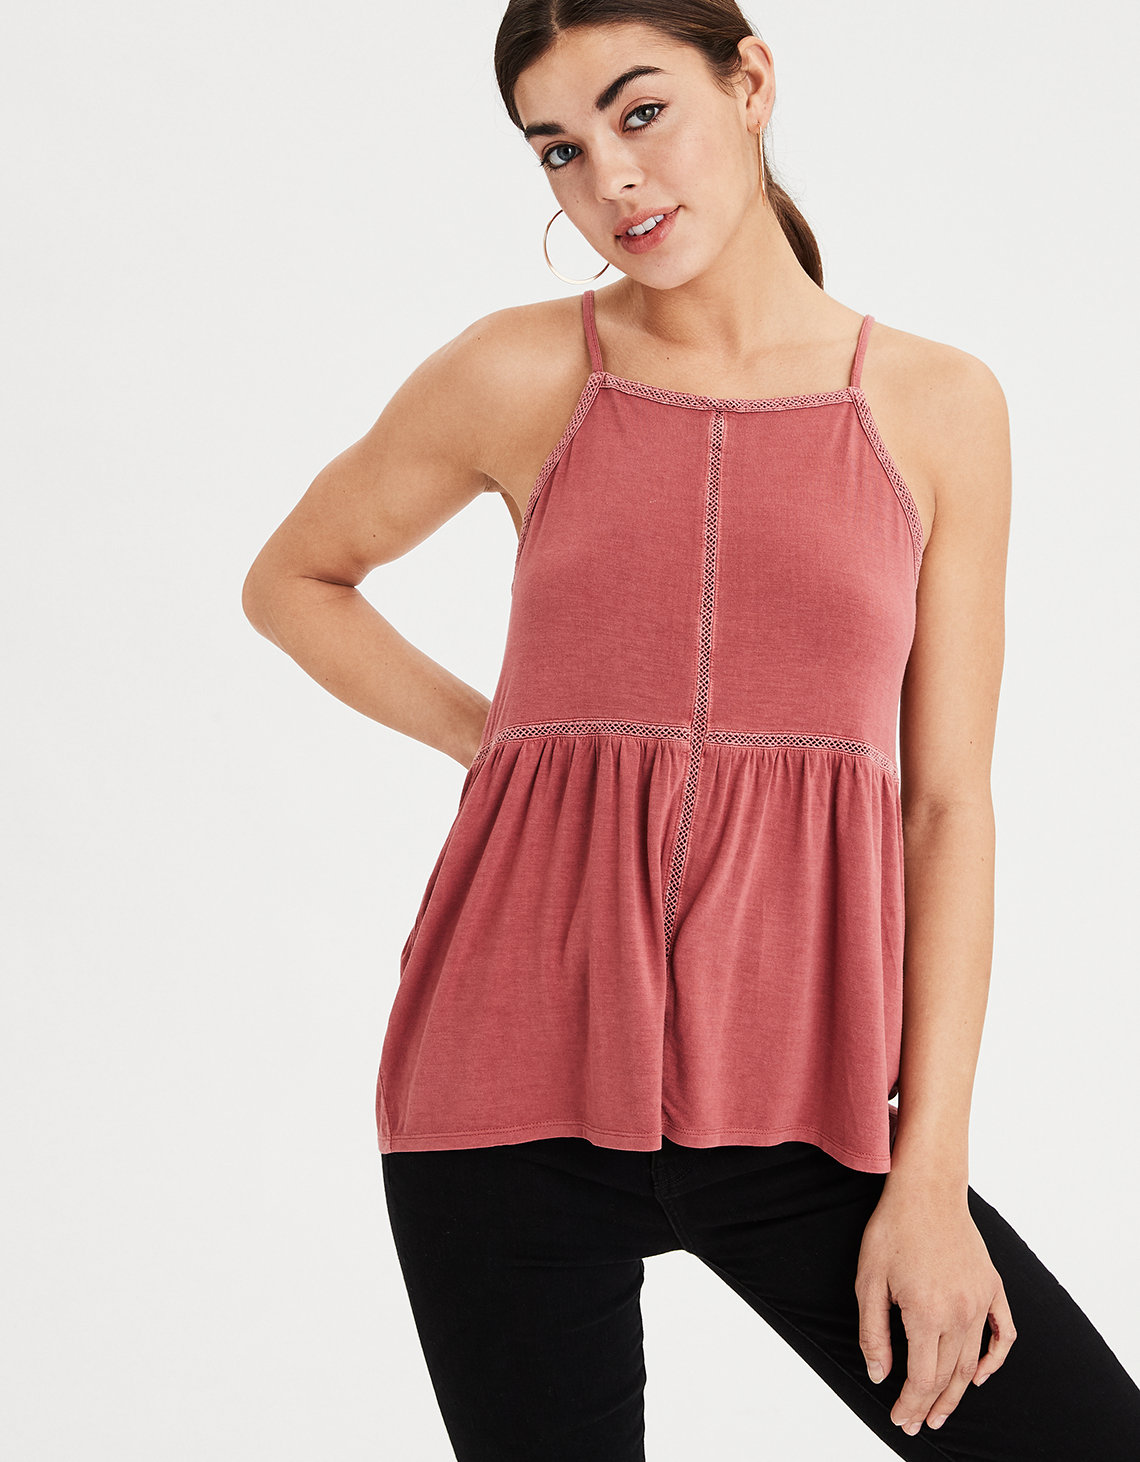 59f0b4da4a24b AE Soft   Sexy Lace Trim Top. Placeholder image. Product Image